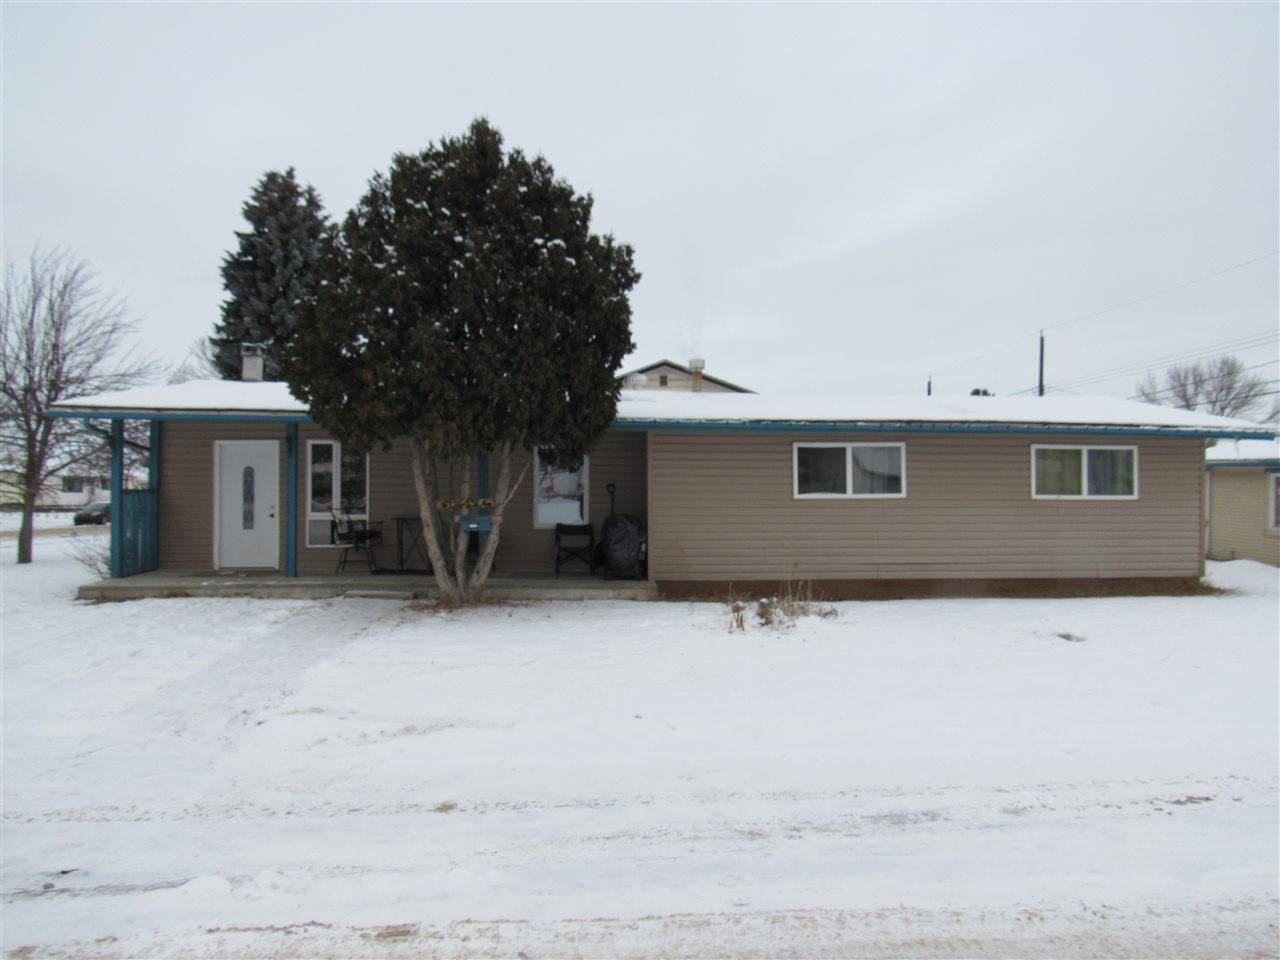 House for sale at 6116 131 Ave Nw Edmonton Alberta - MLS: E4181870